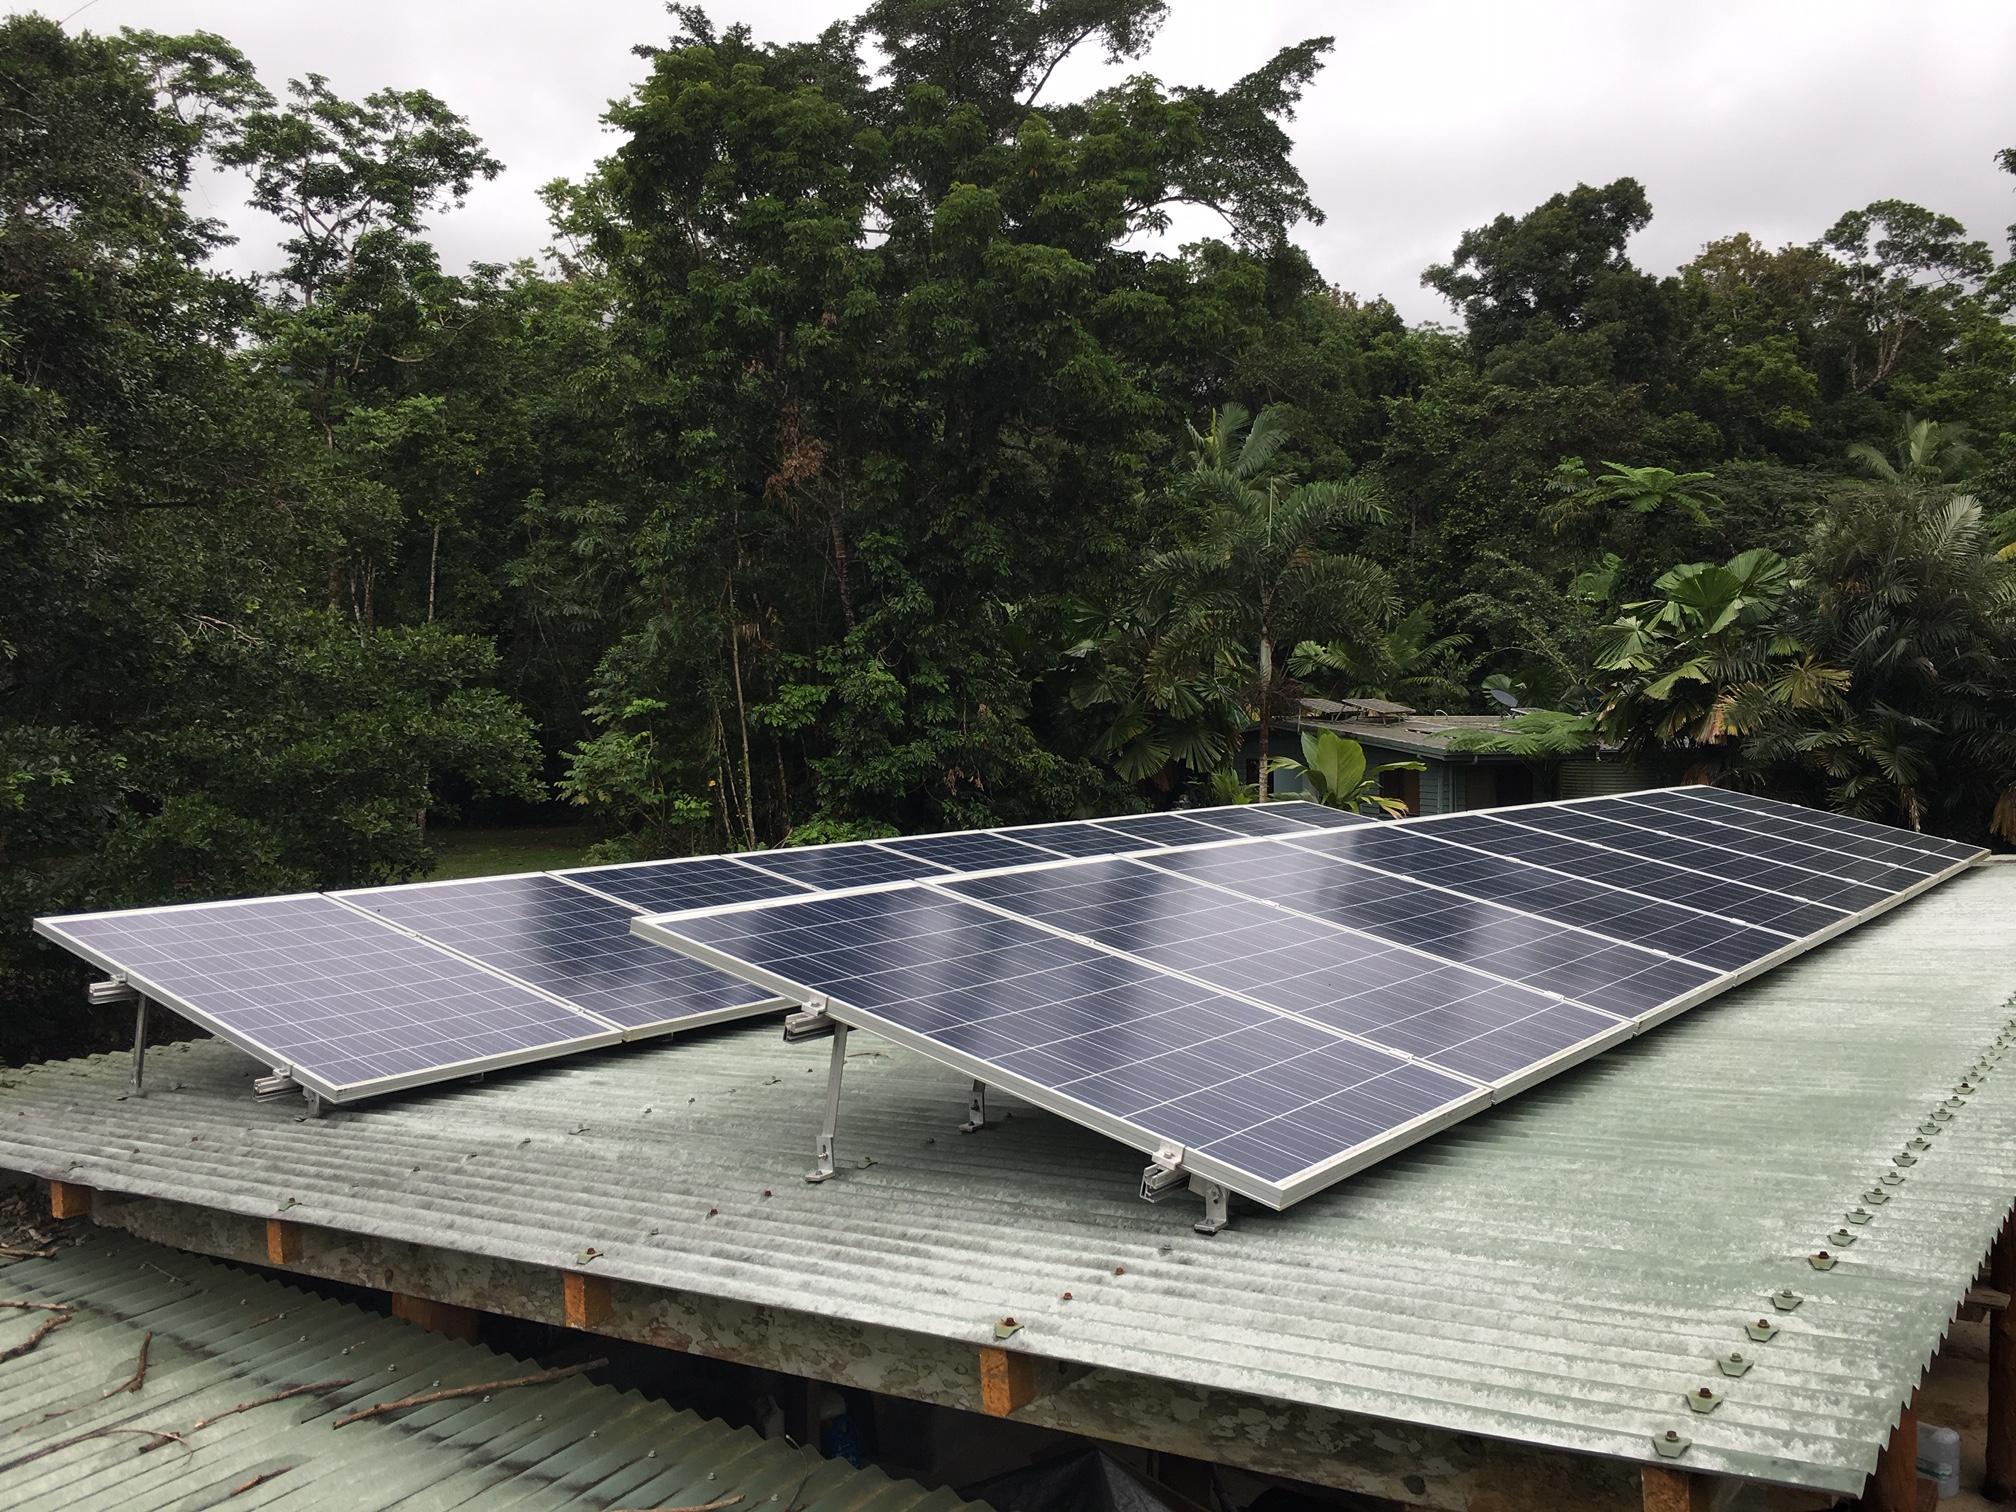 Solar panels generating power in the Daintree Lowland Rainforest